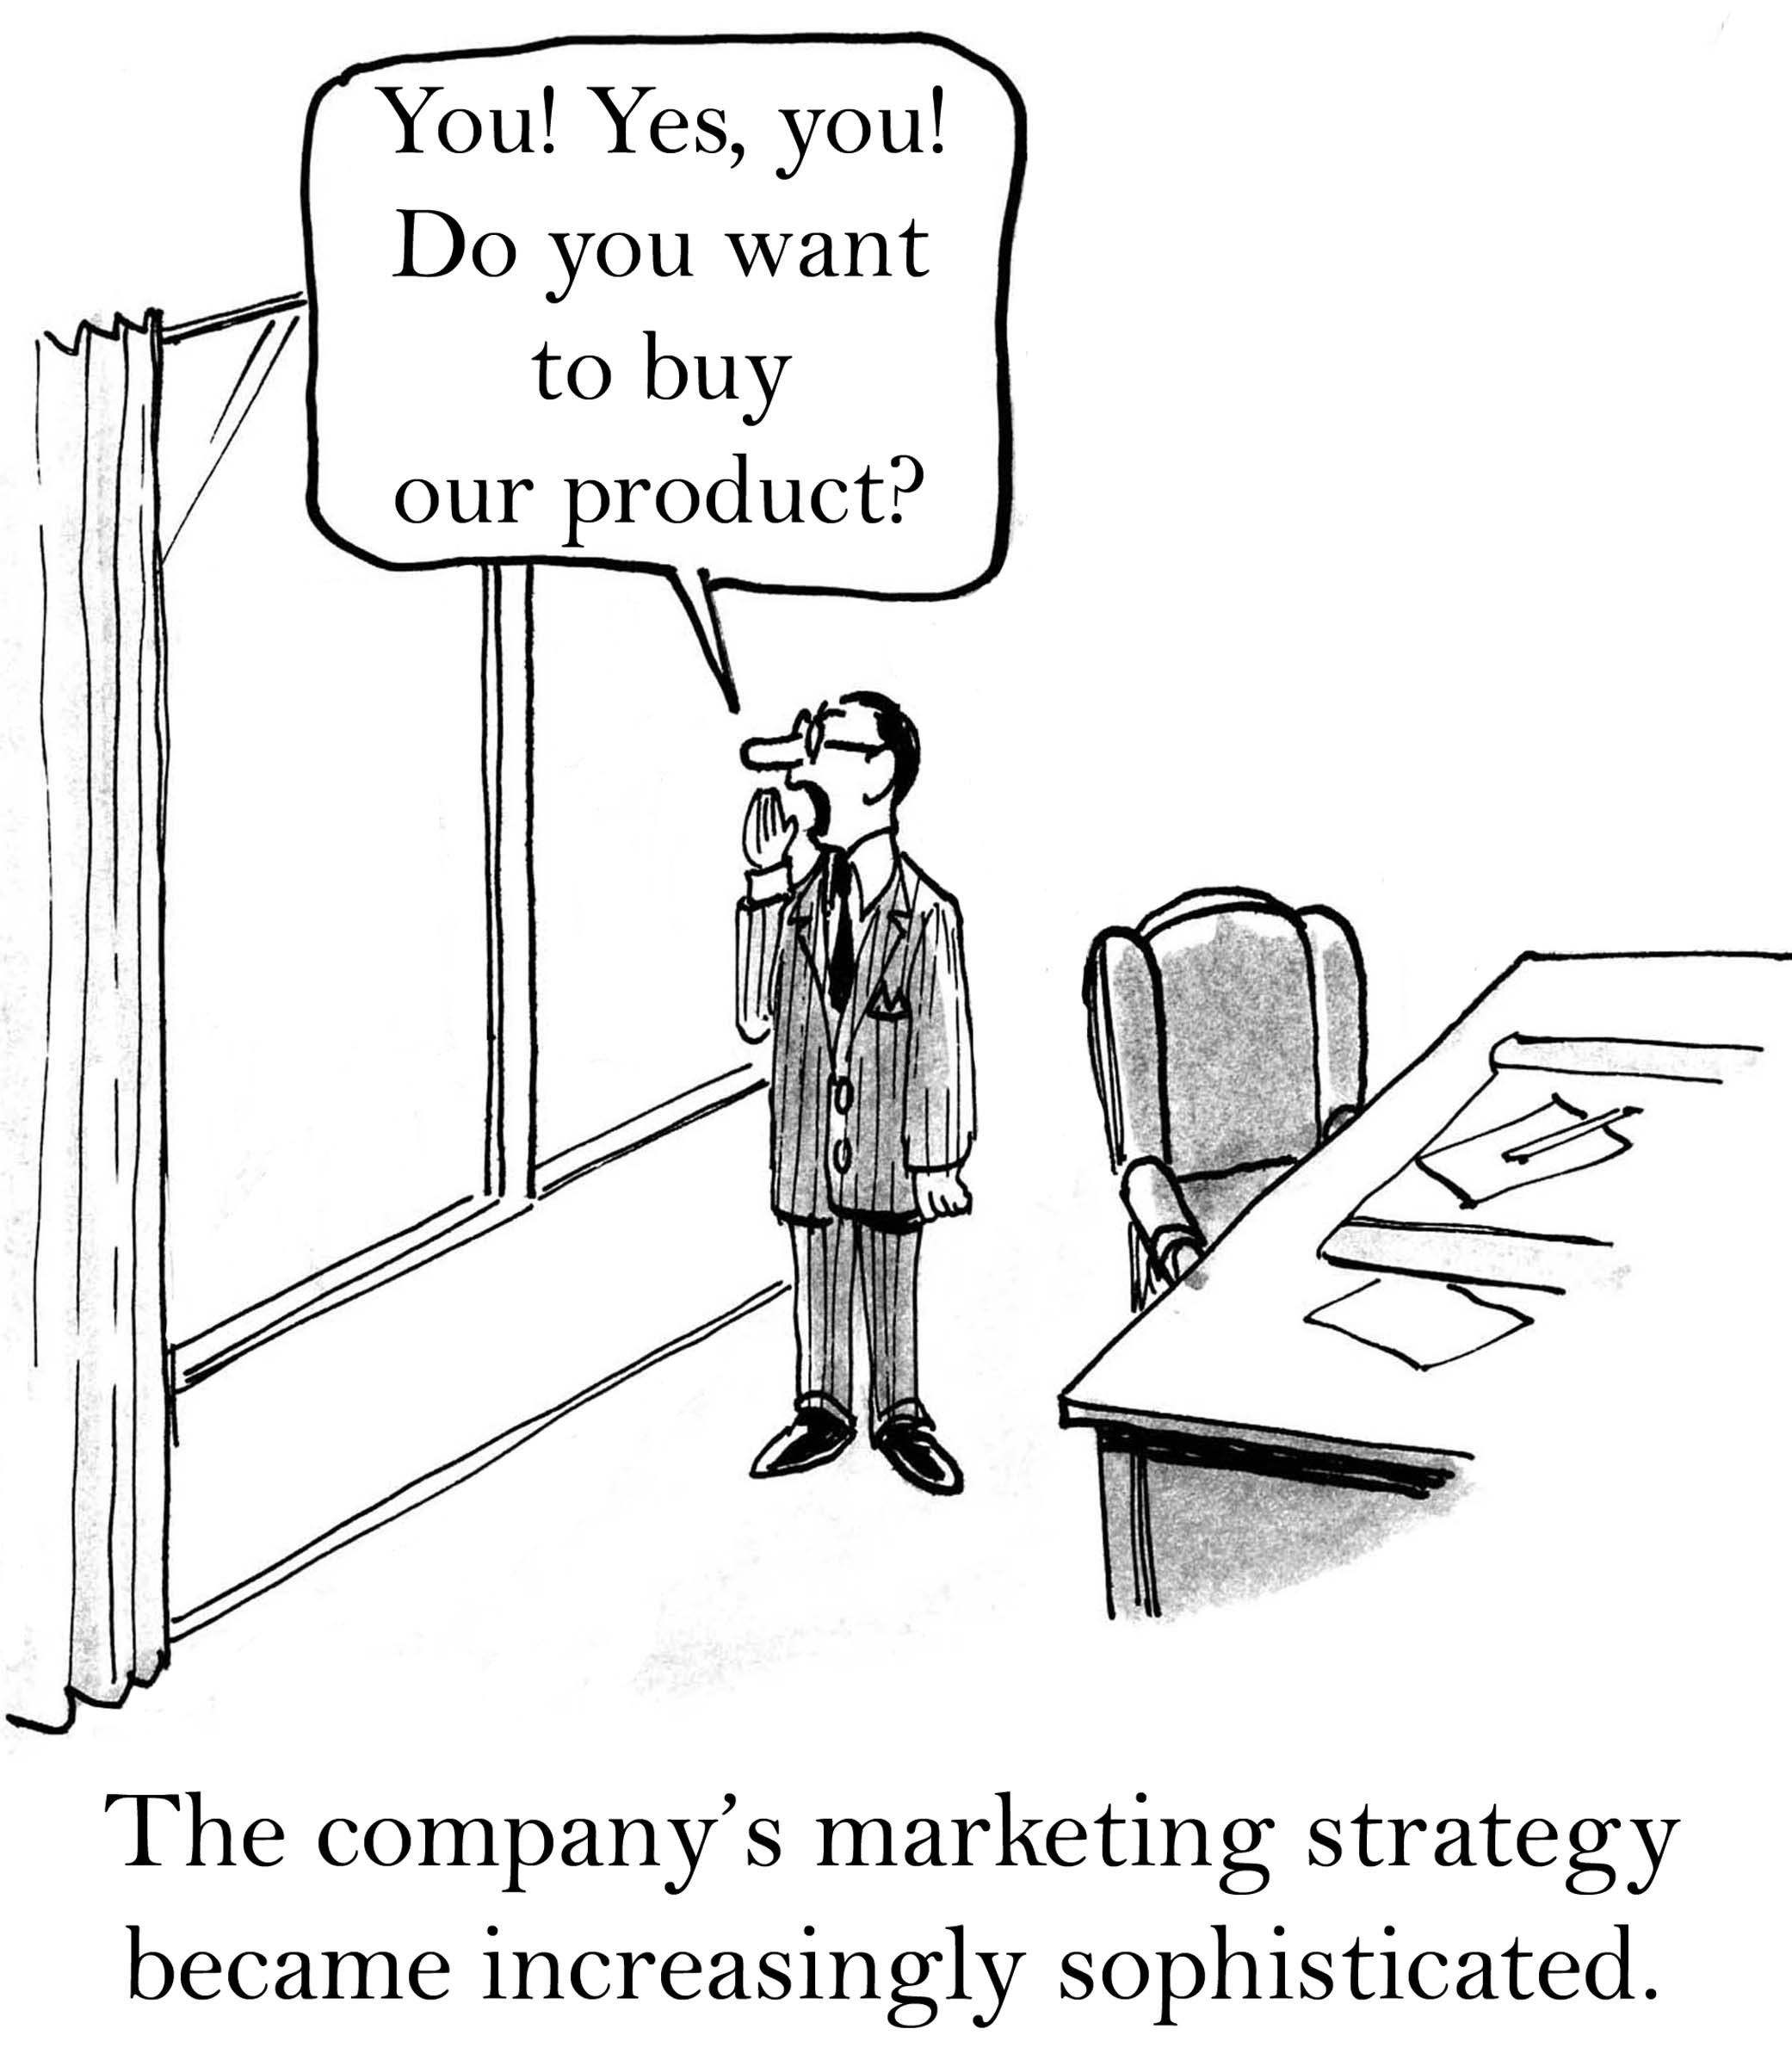 The company's marketing strategy became increasingly sophisticated